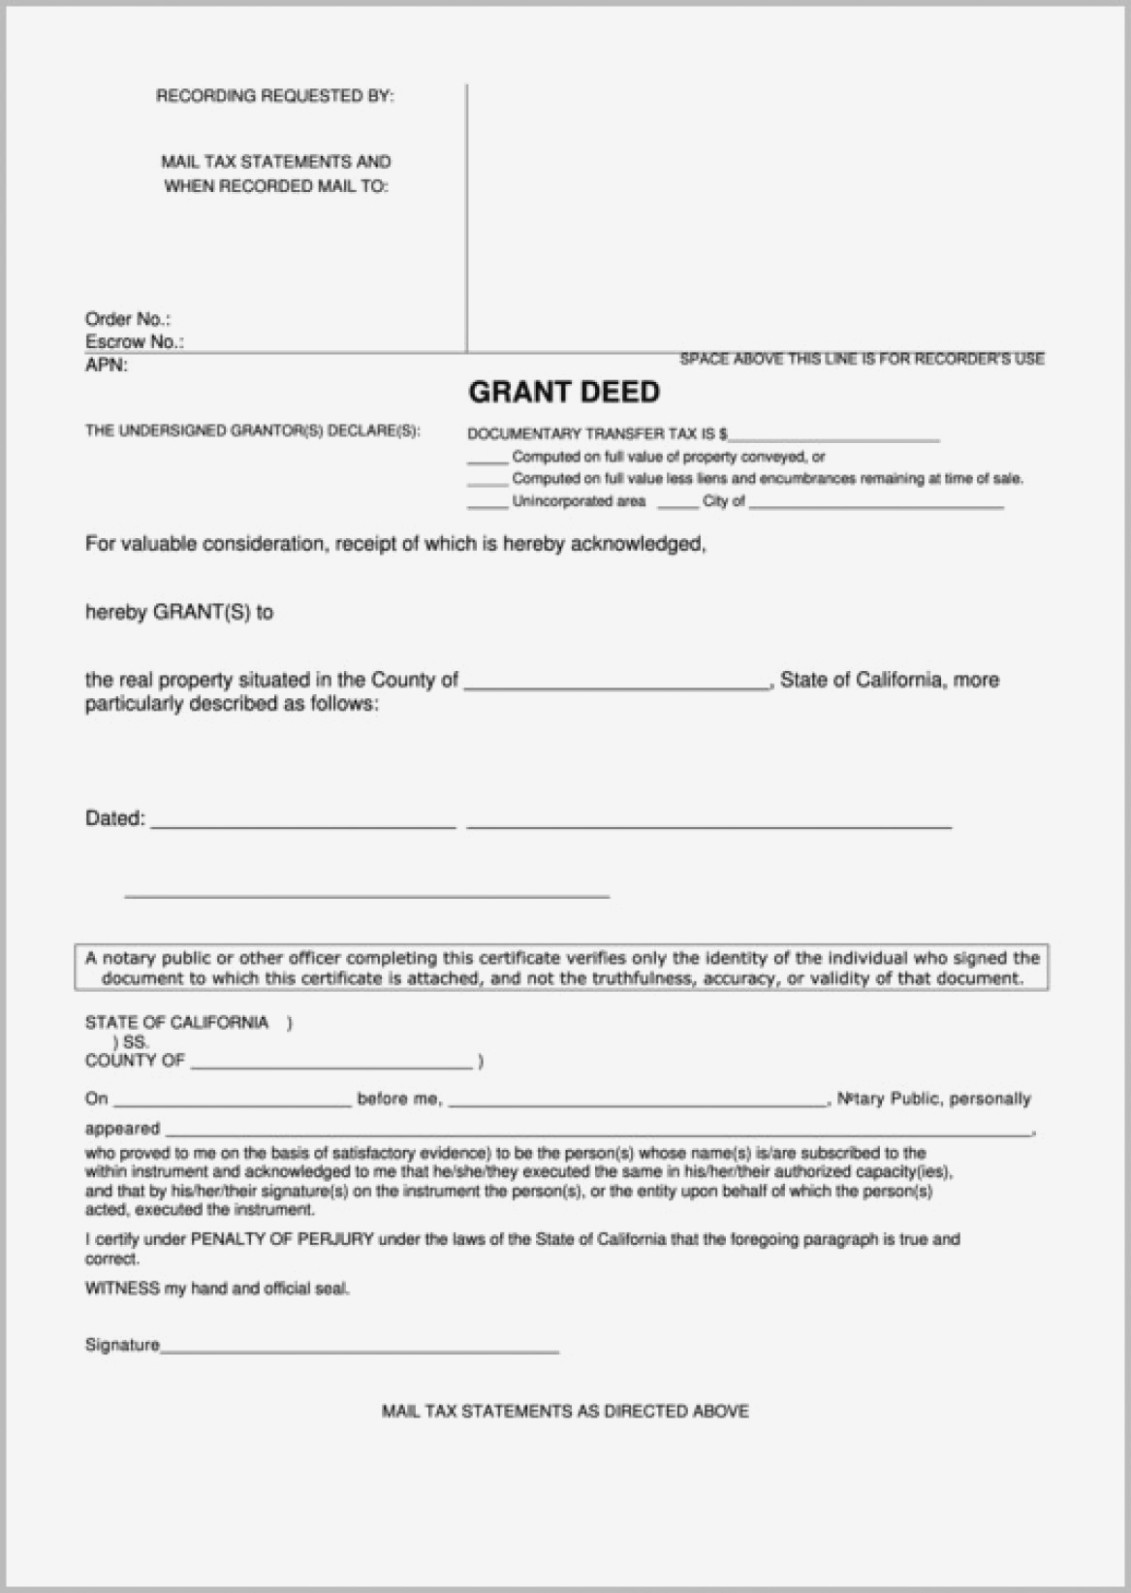 Trust Transfer Grant Deed Form